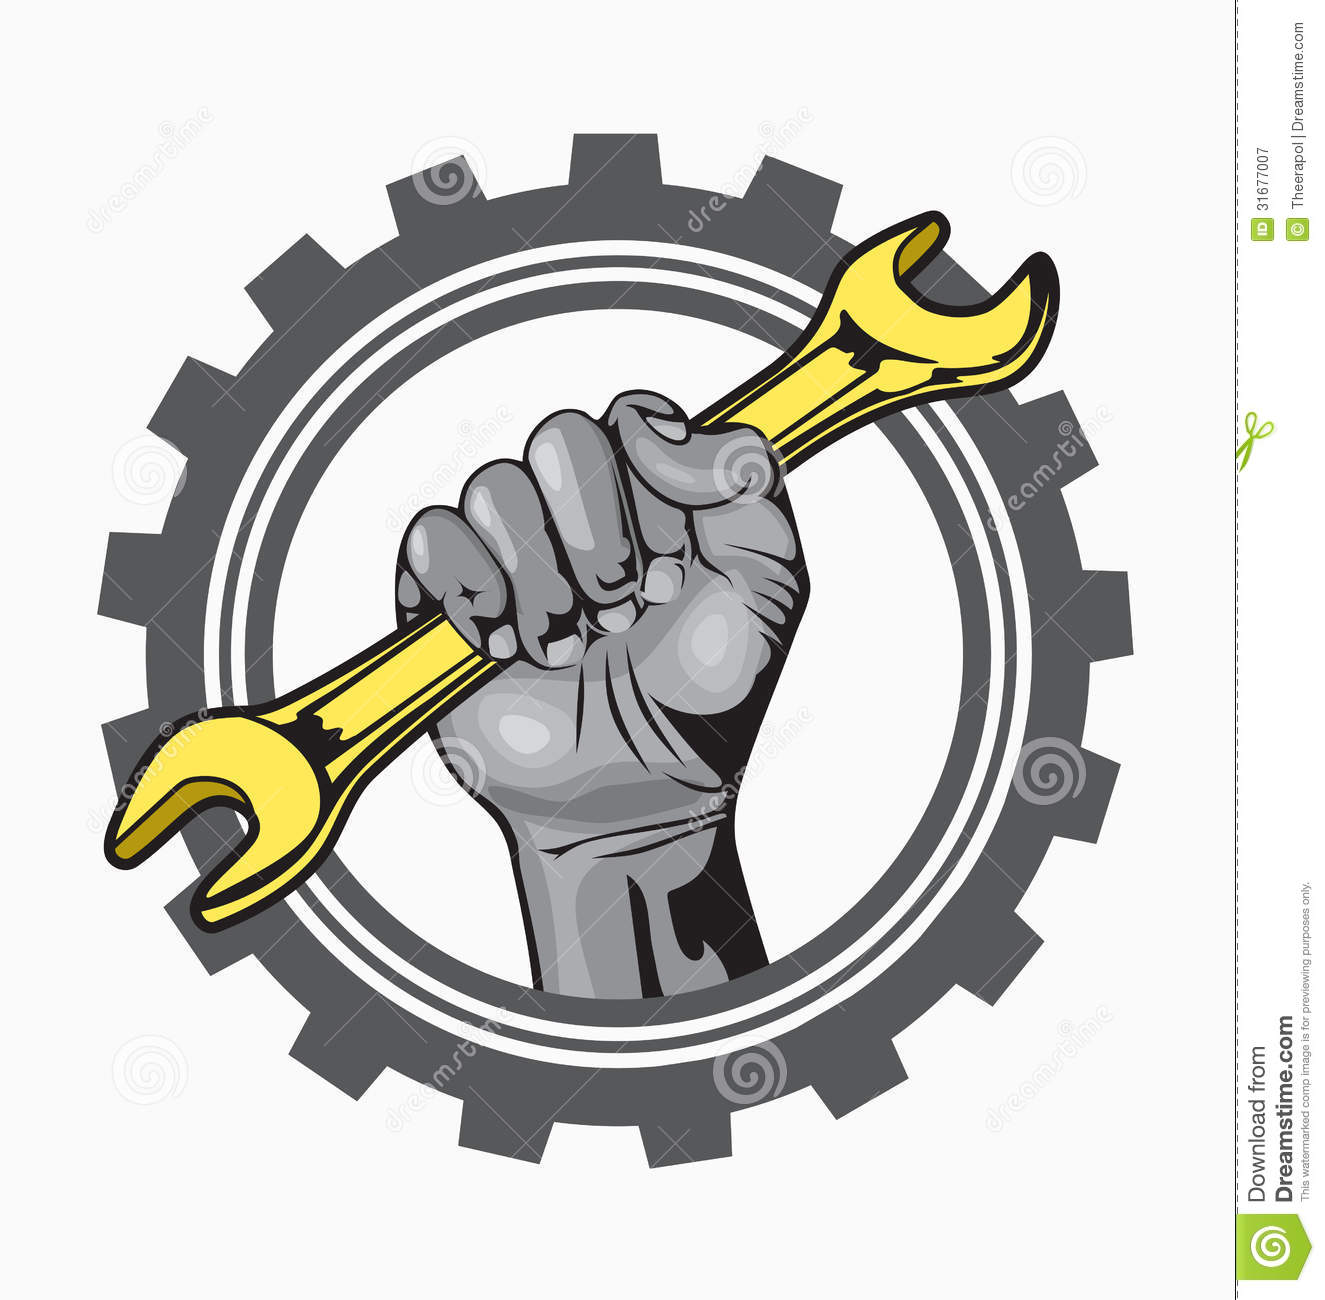 hand logo royalty free stock photography image 31677007 auto mechanics clip art free auto mechanics clip art free